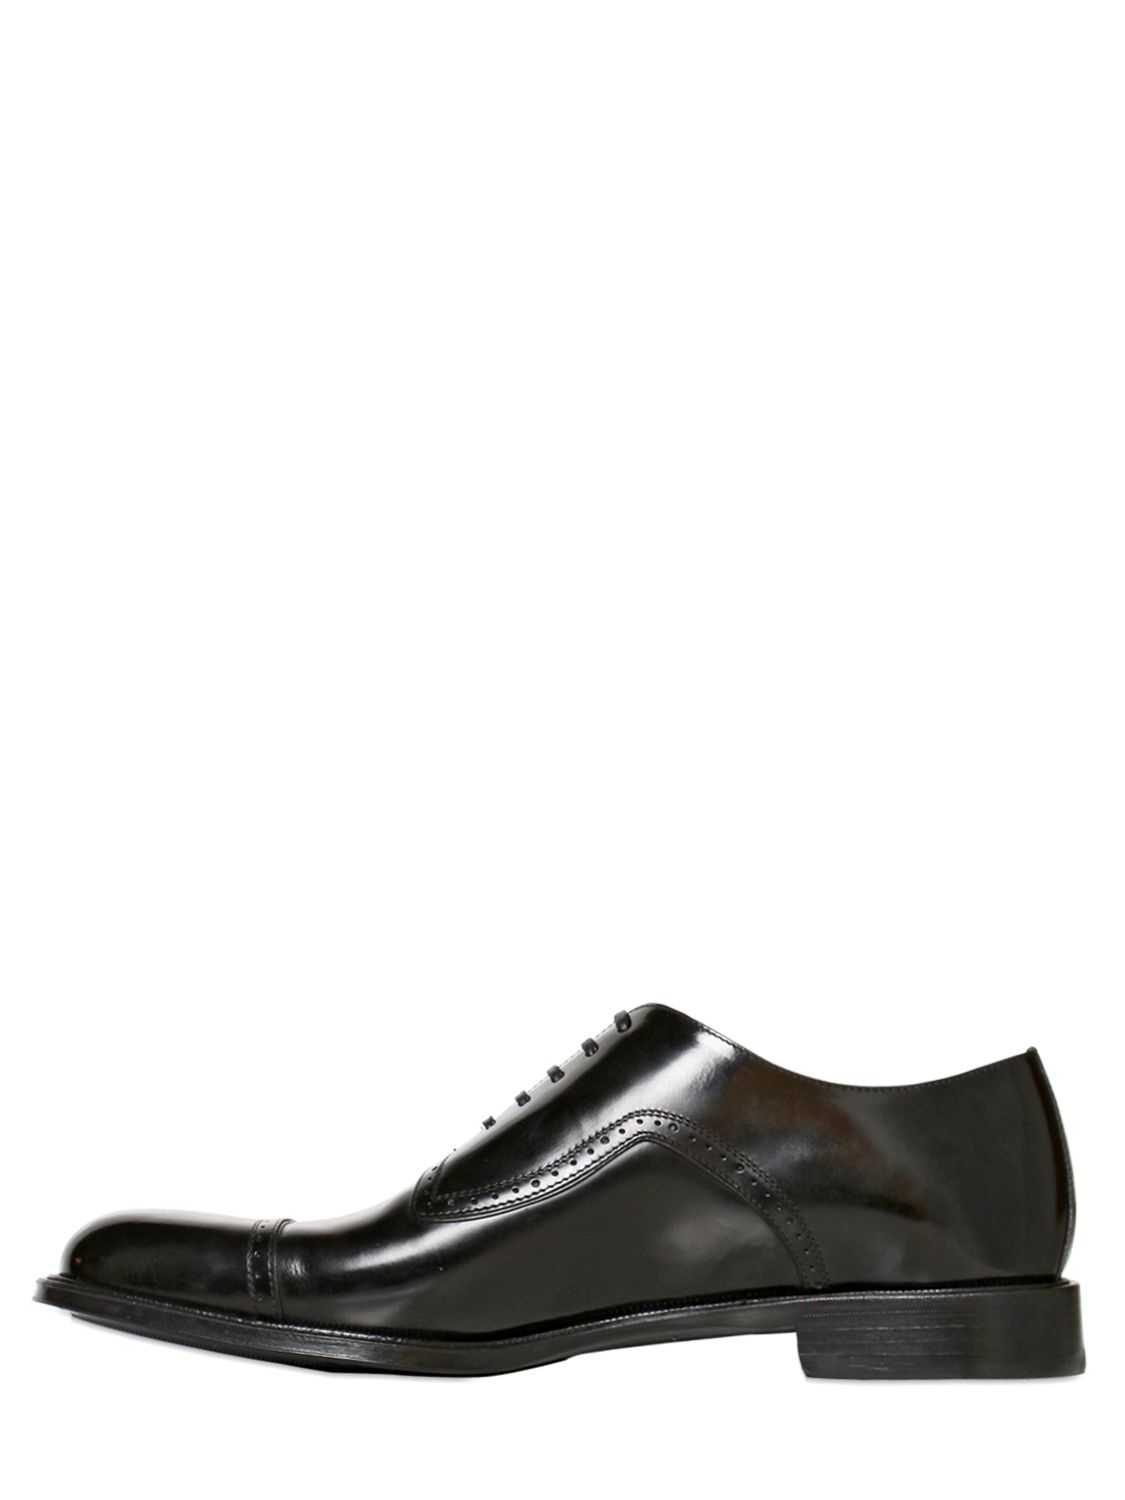 Dolce & Gabbana Siena Brushed Calf Oxford Lace Up Shoes in Black for Men